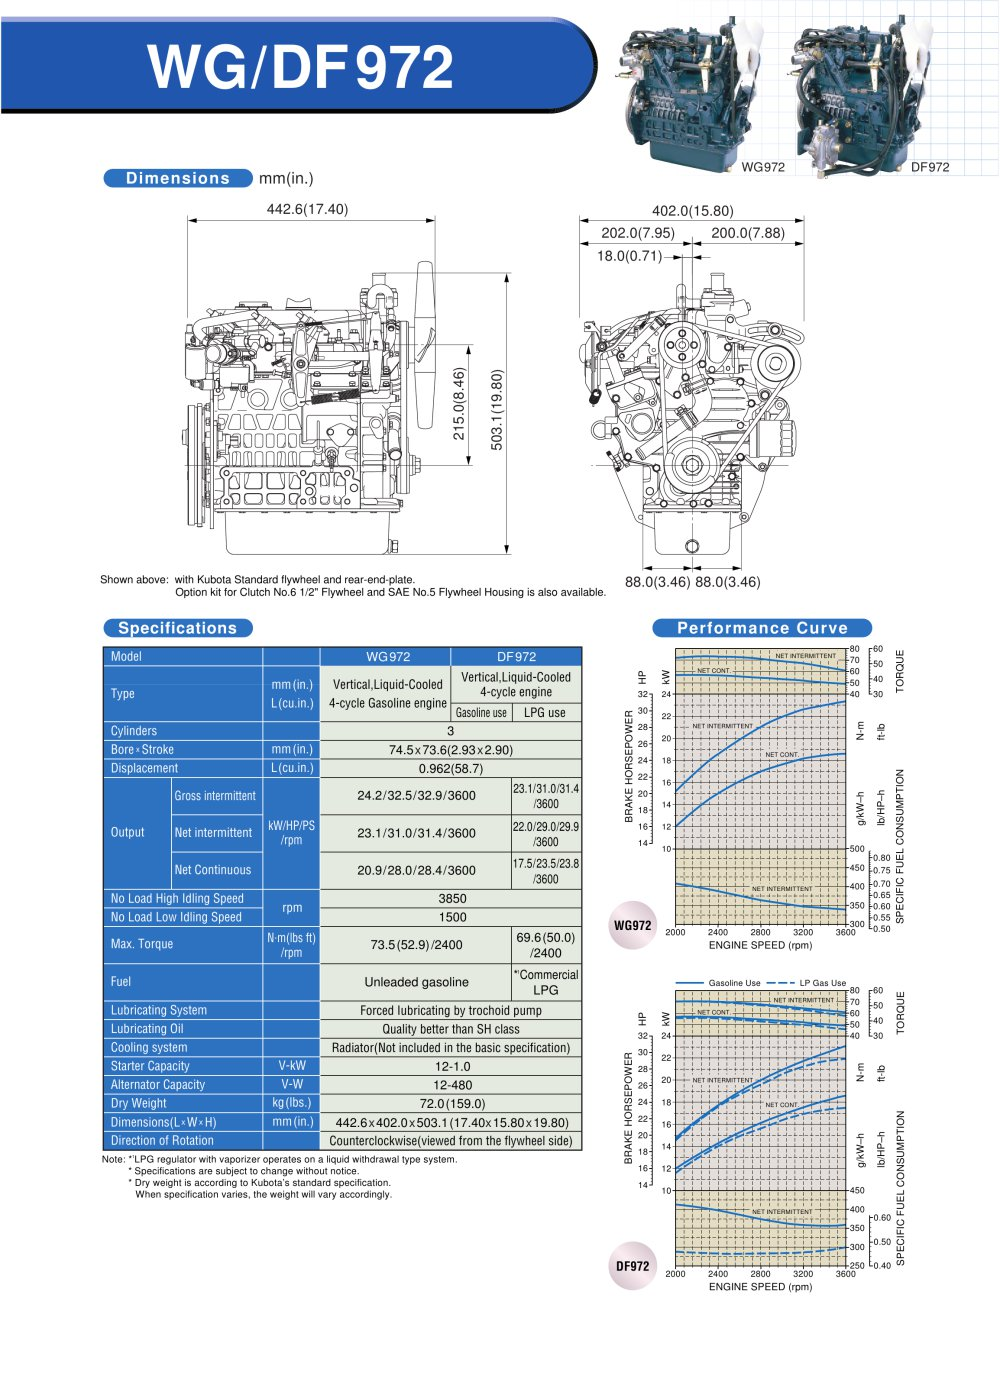 WG/DF 972 - 1 / 1 Pages